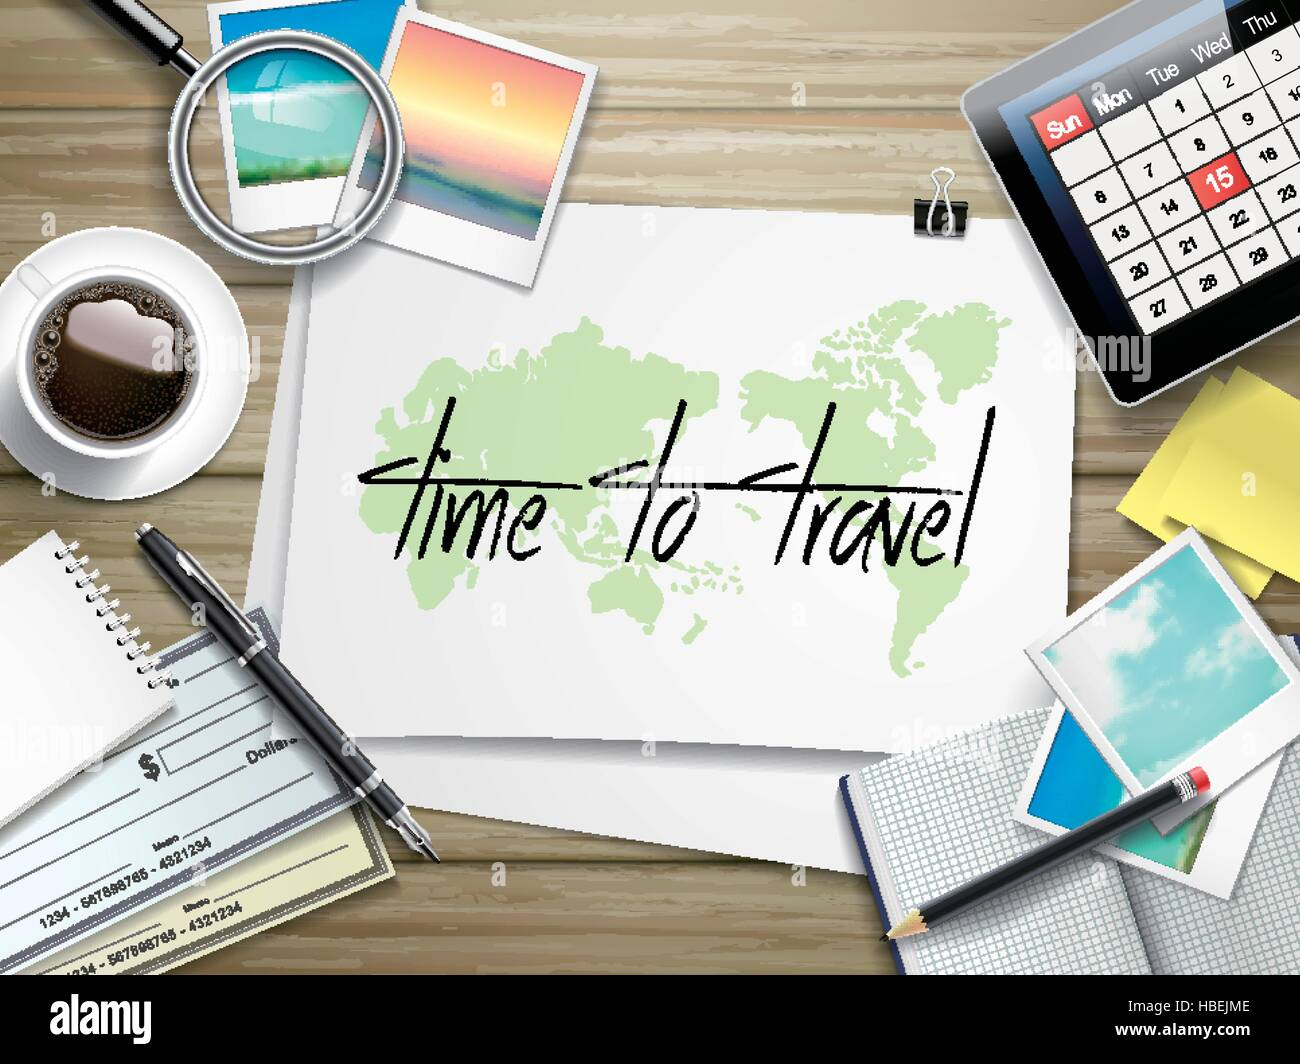 top view of travel items on wooden table with time to travel written on paper - Stock Vector